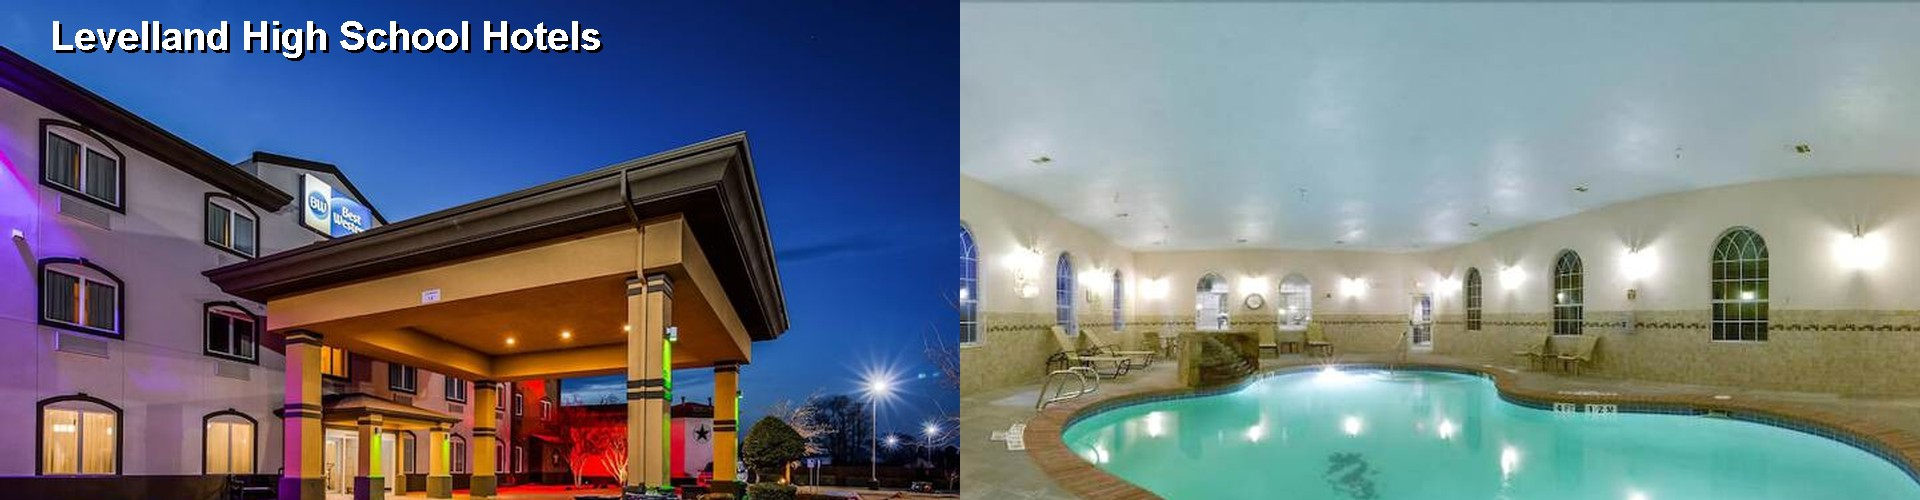 5 Best Hotels near Levelland High School